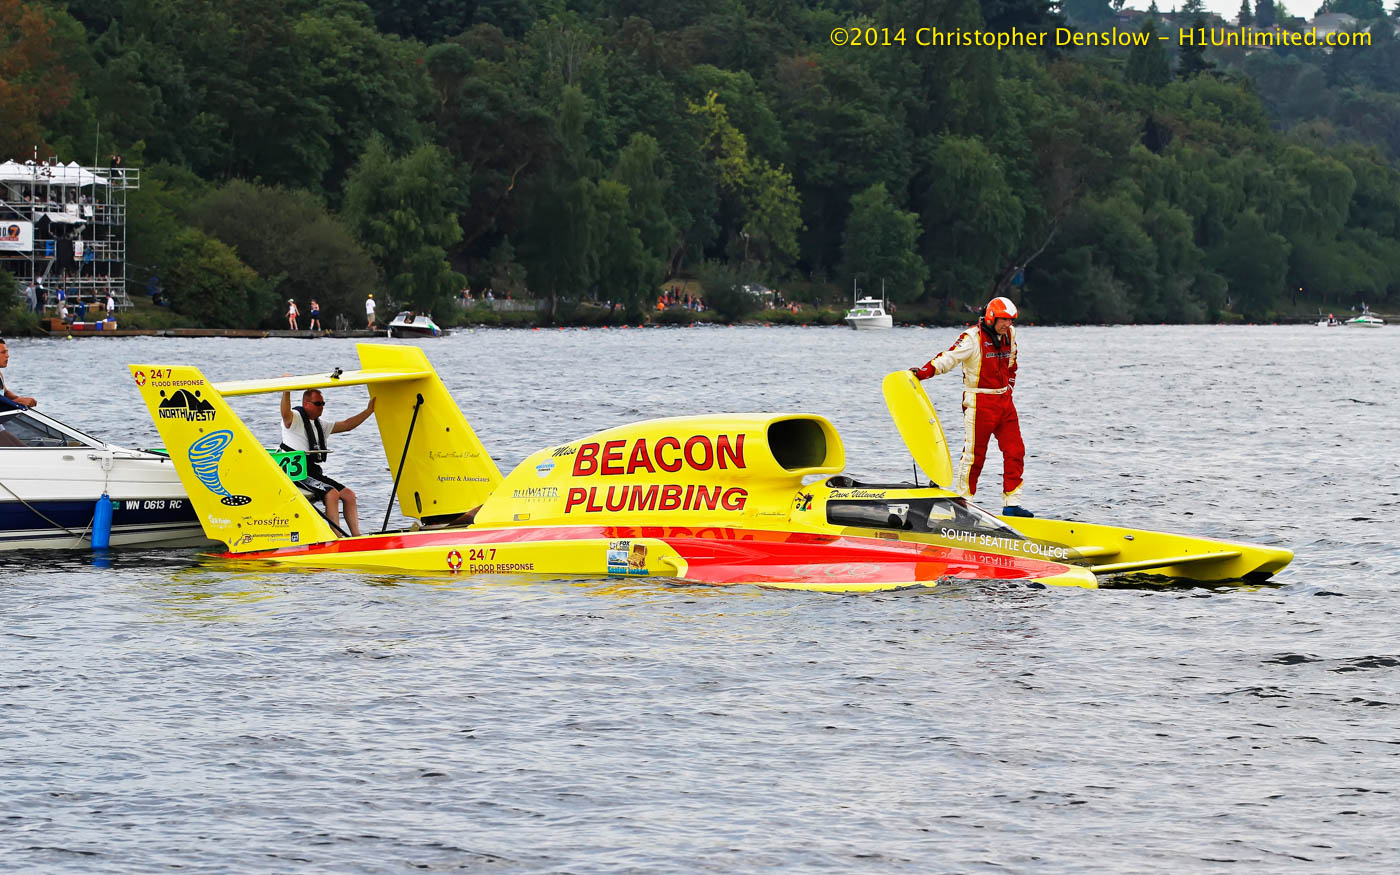 2014 Seafair Cup: Saturday Images